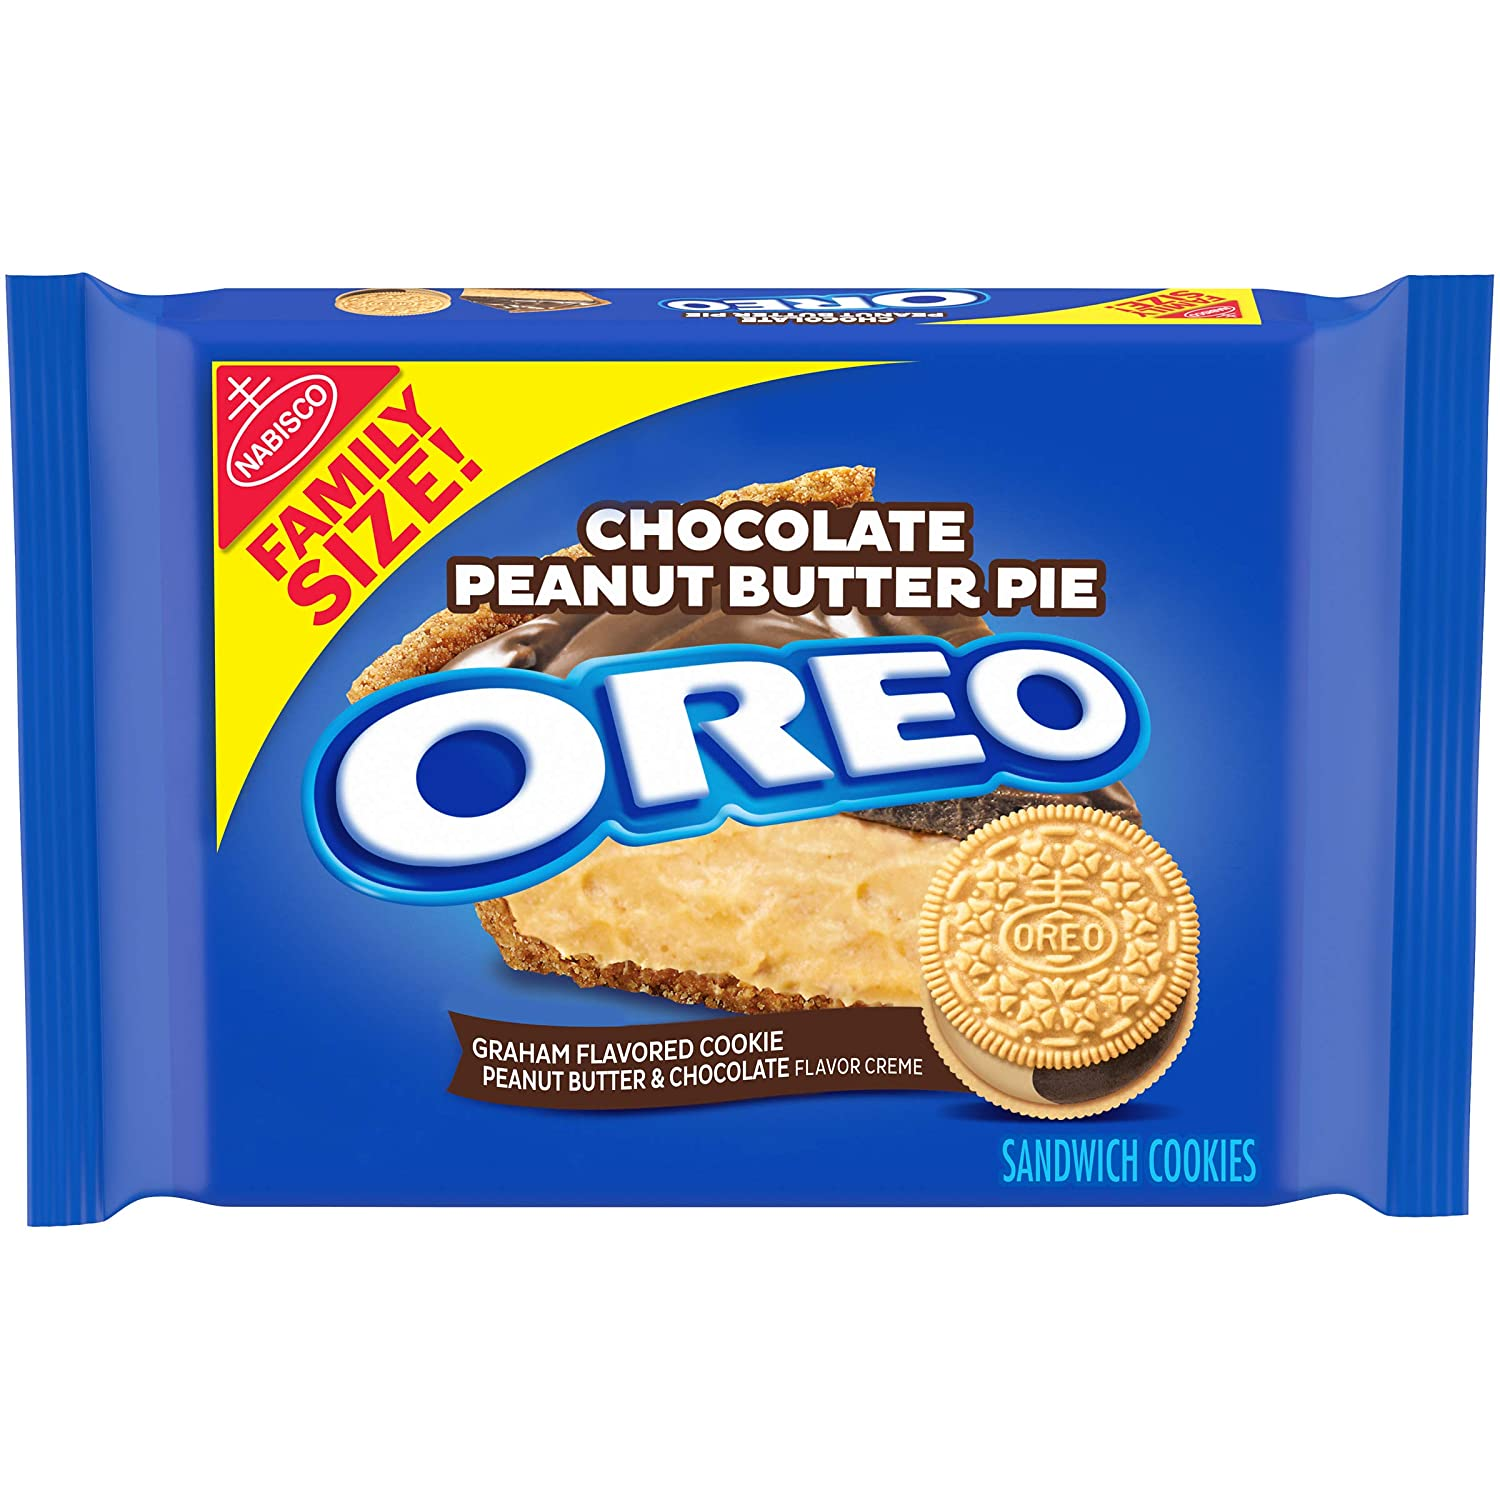 OREO Chocolate Peanut Butter Pie Sandwich Cookies, 1 - 17 oz Family Size package